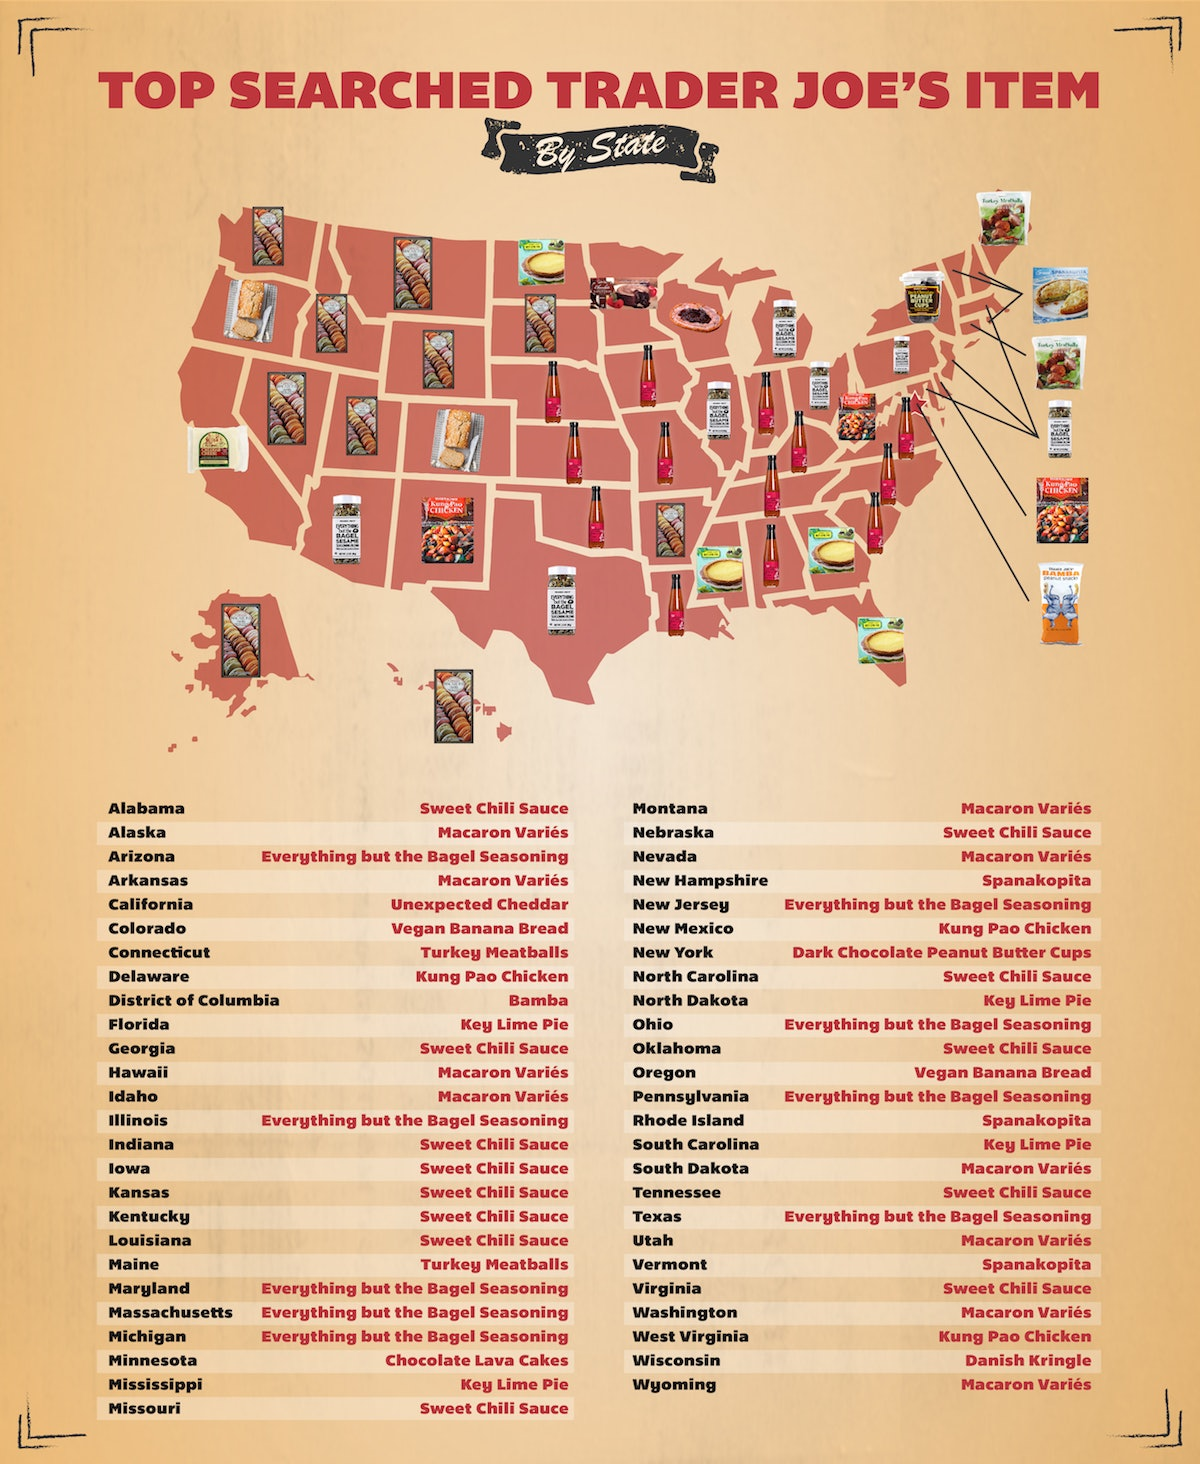 trader joe's favorites by state